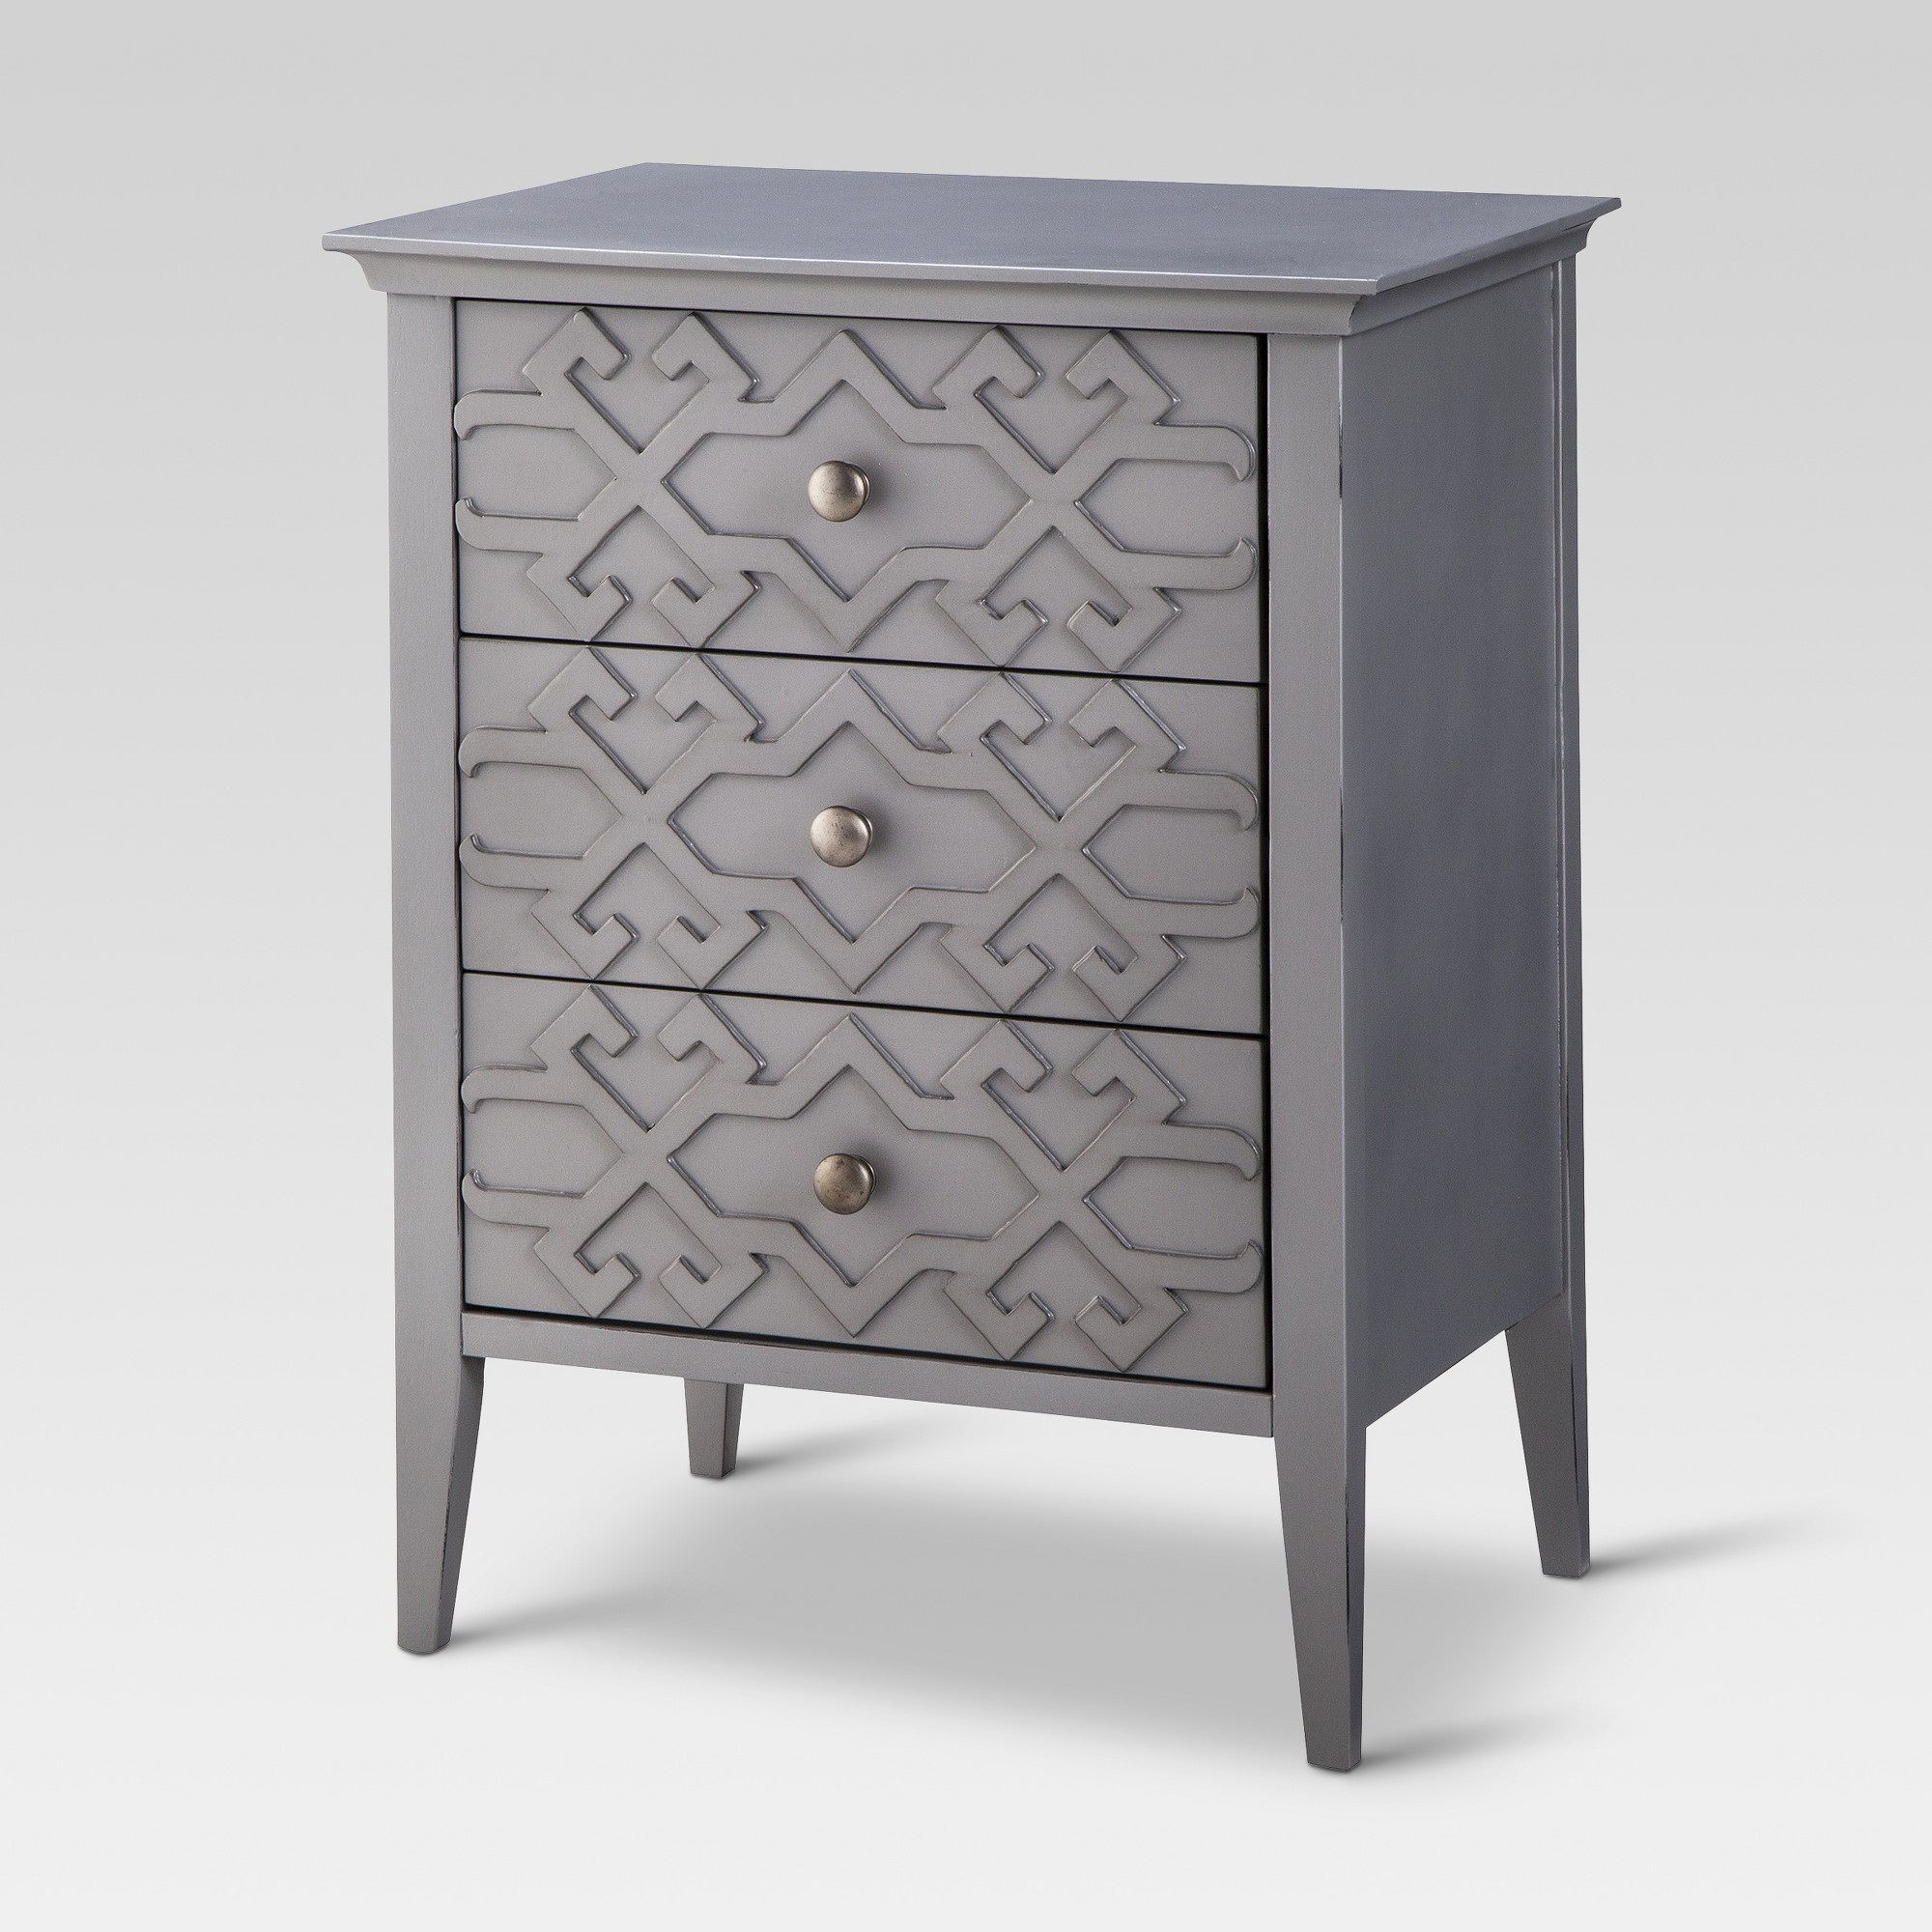 fretwork accent table threshold gray products target vintage white finish antique green side wicker patio with glass top leick laurent furniture living room tables round cover